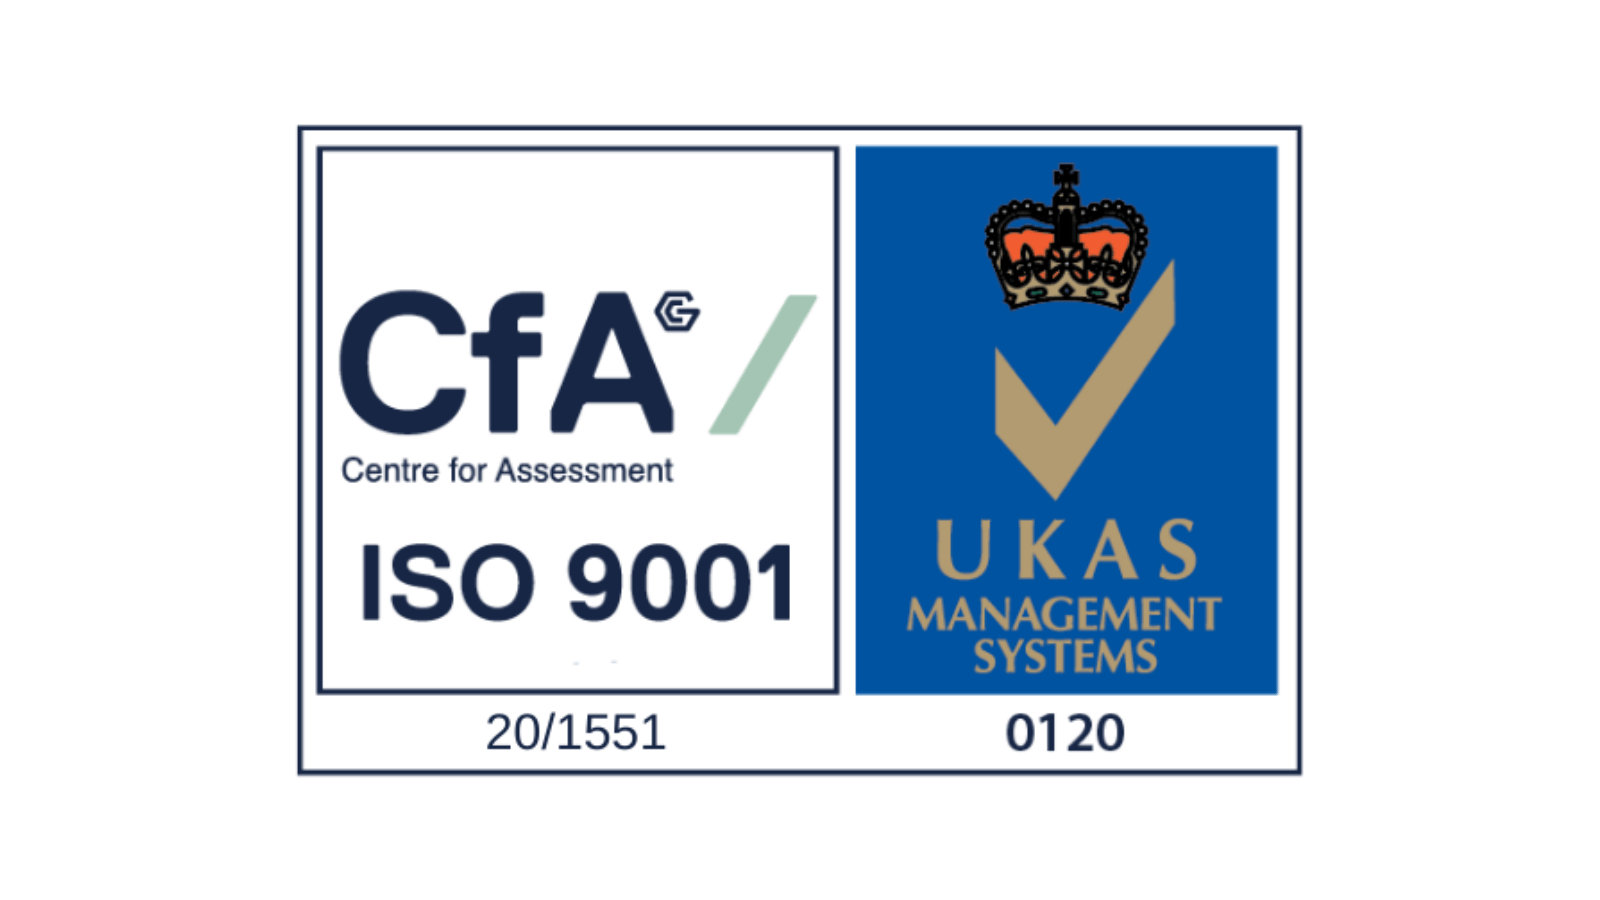 We are ISO accredited